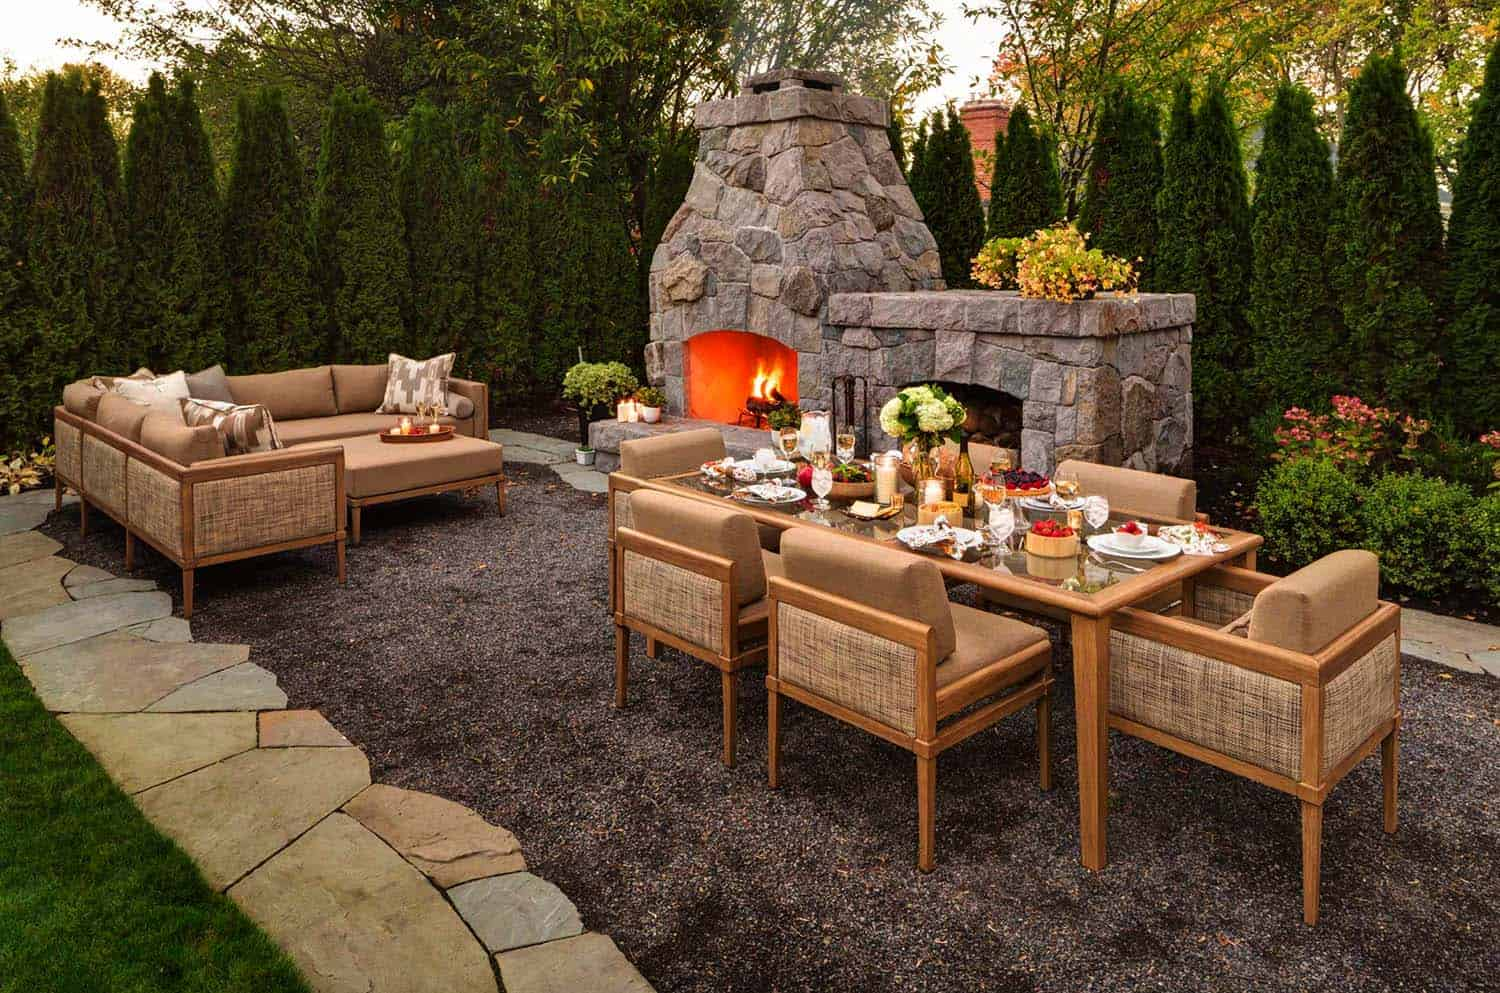 25 fabulous outdoor patio ideas to get ready for spring enjoyment. Black Bedroom Furniture Sets. Home Design Ideas